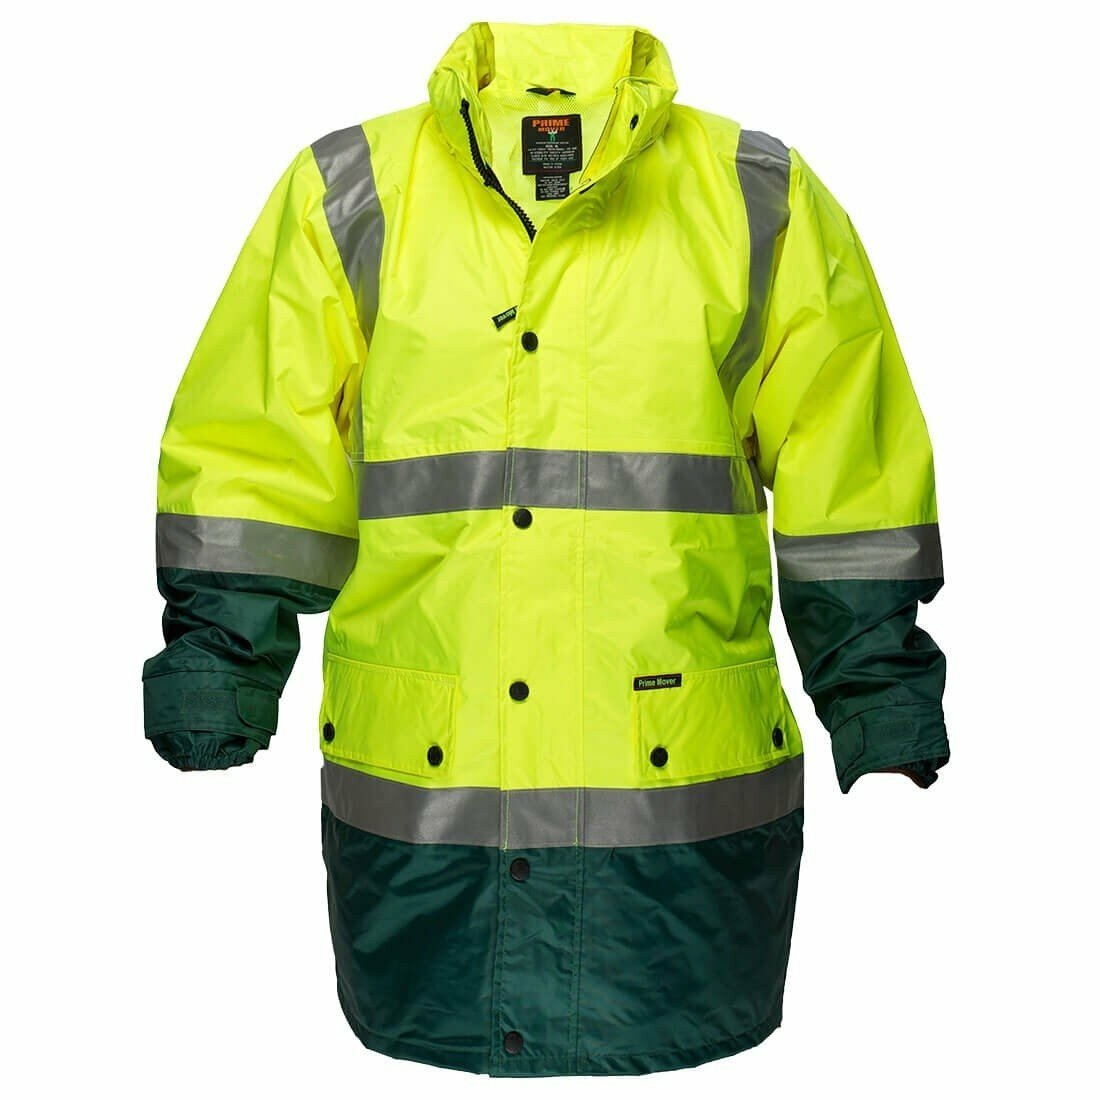 MJ306 Eyre Lightweight Hi-Vis Rain Jacket with Tape